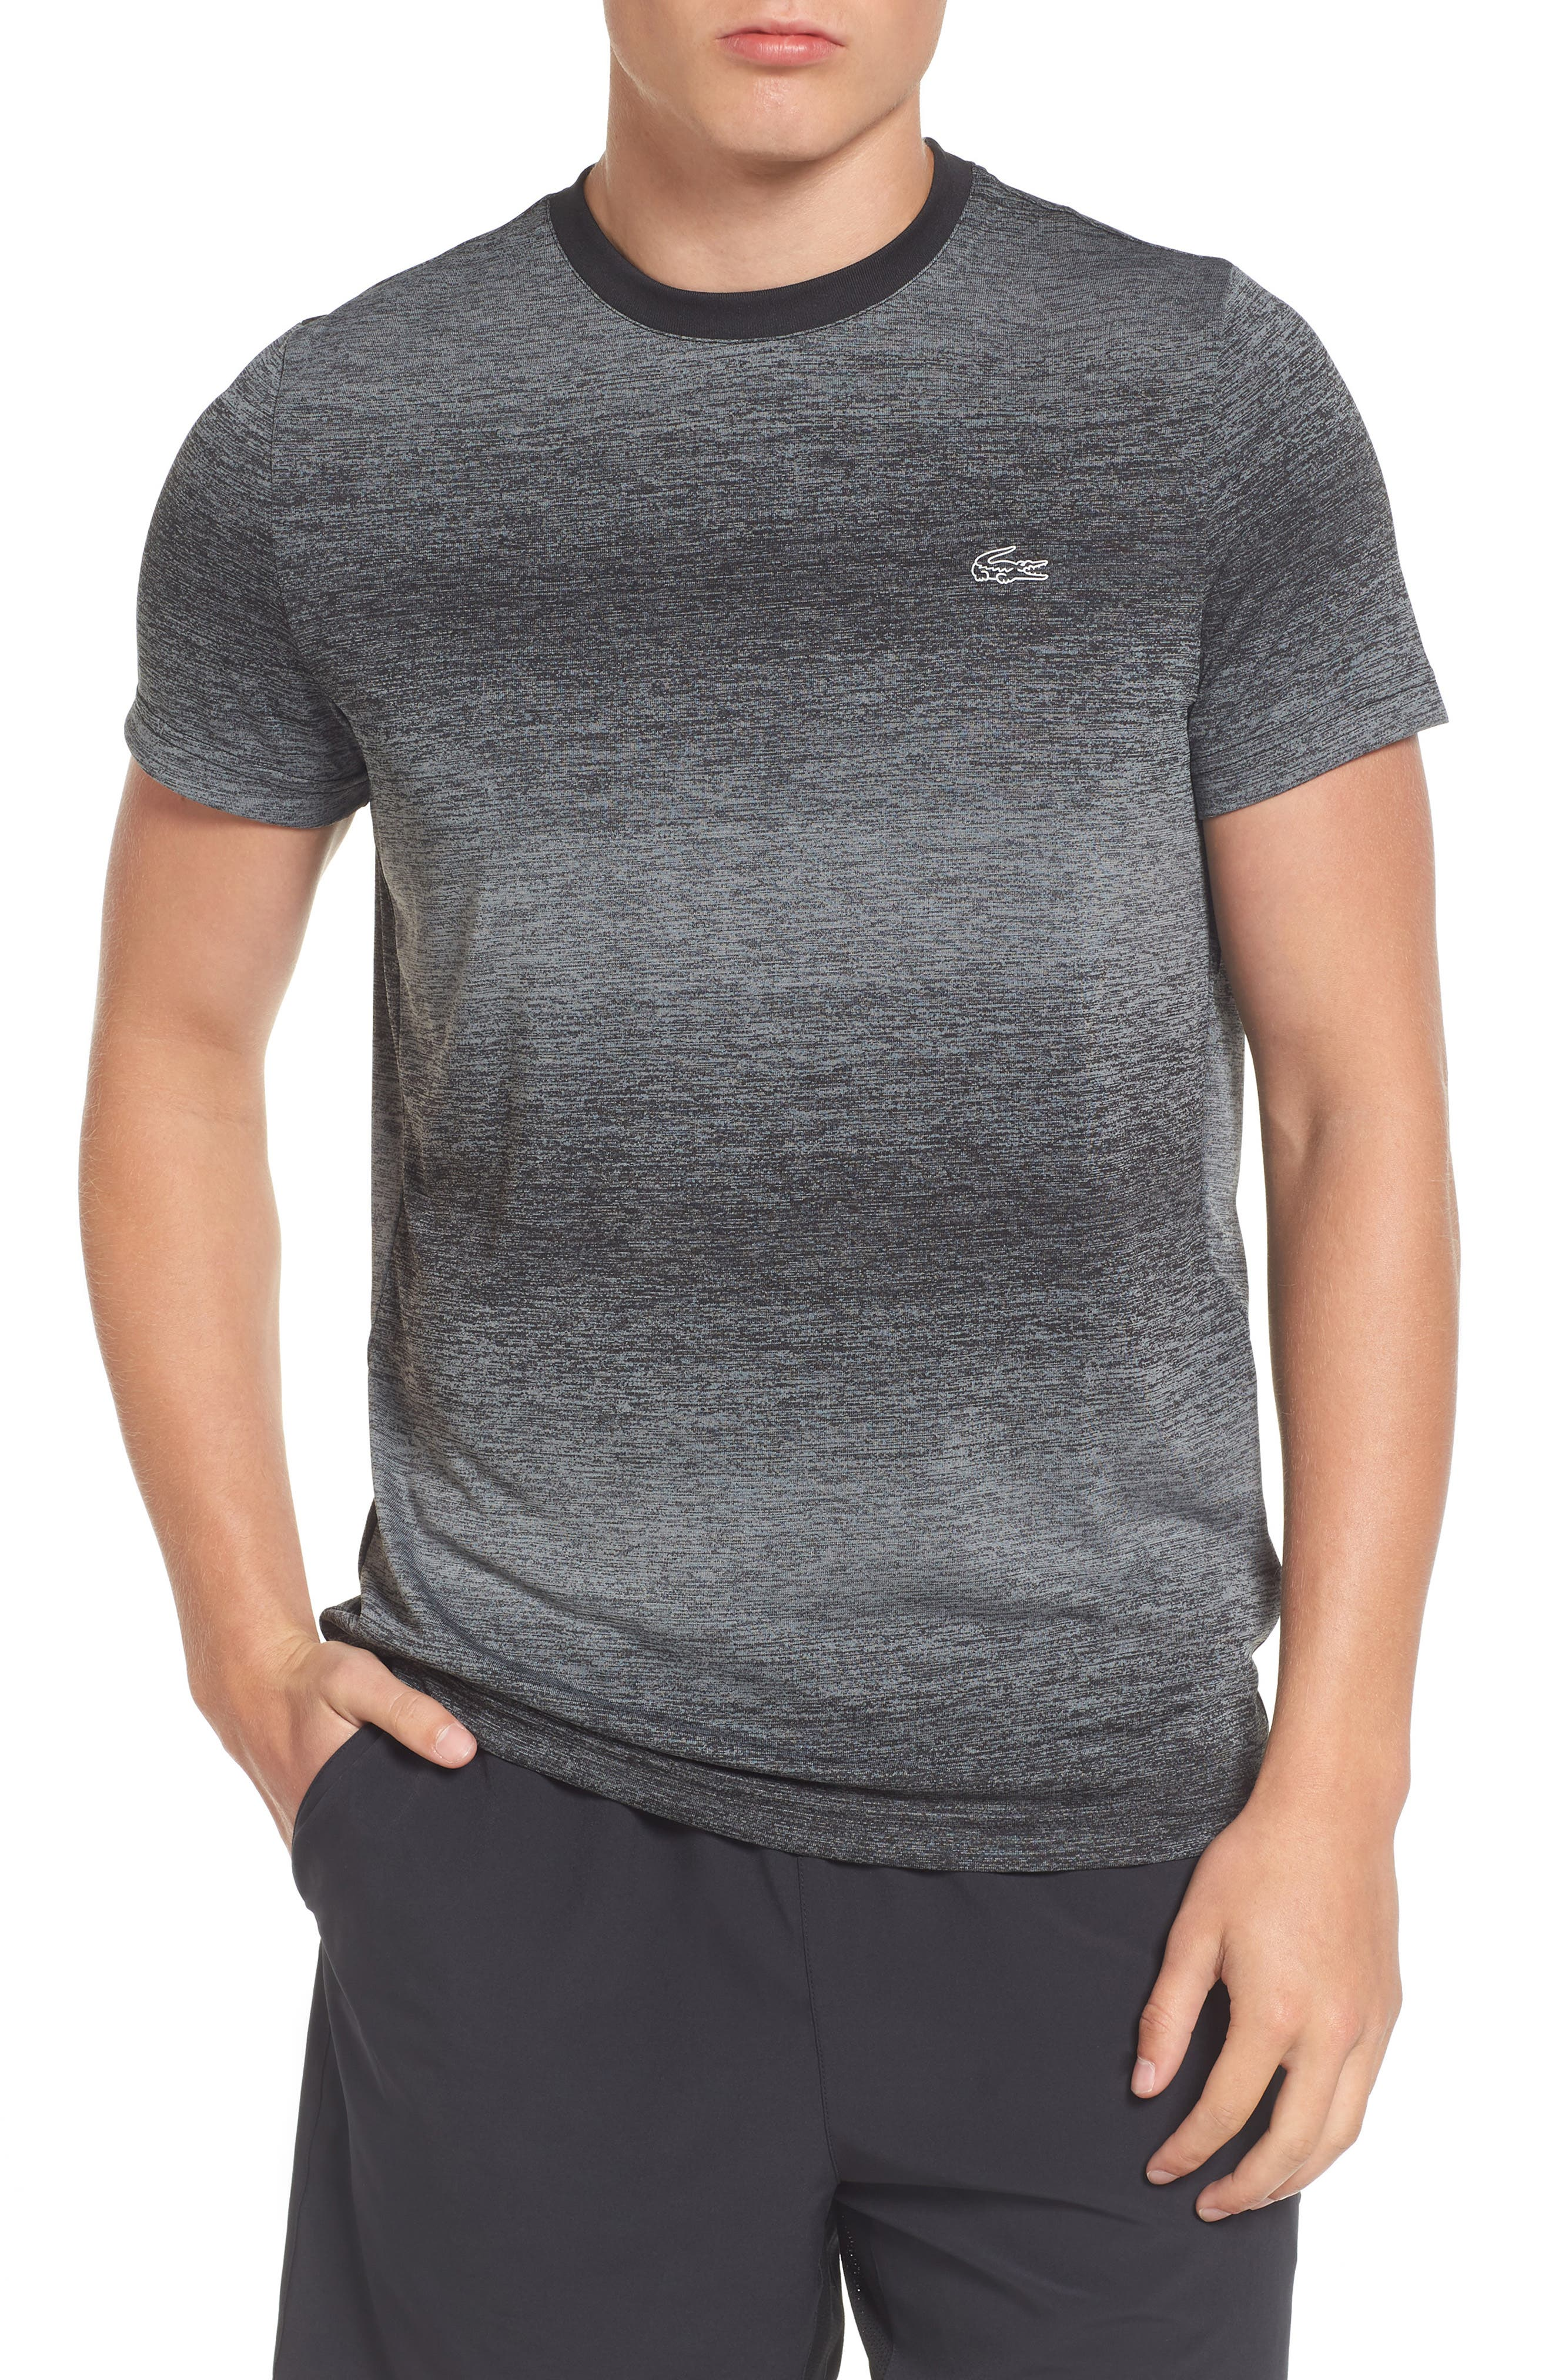 Lacoste Ultra Dry Tech T-Shirt